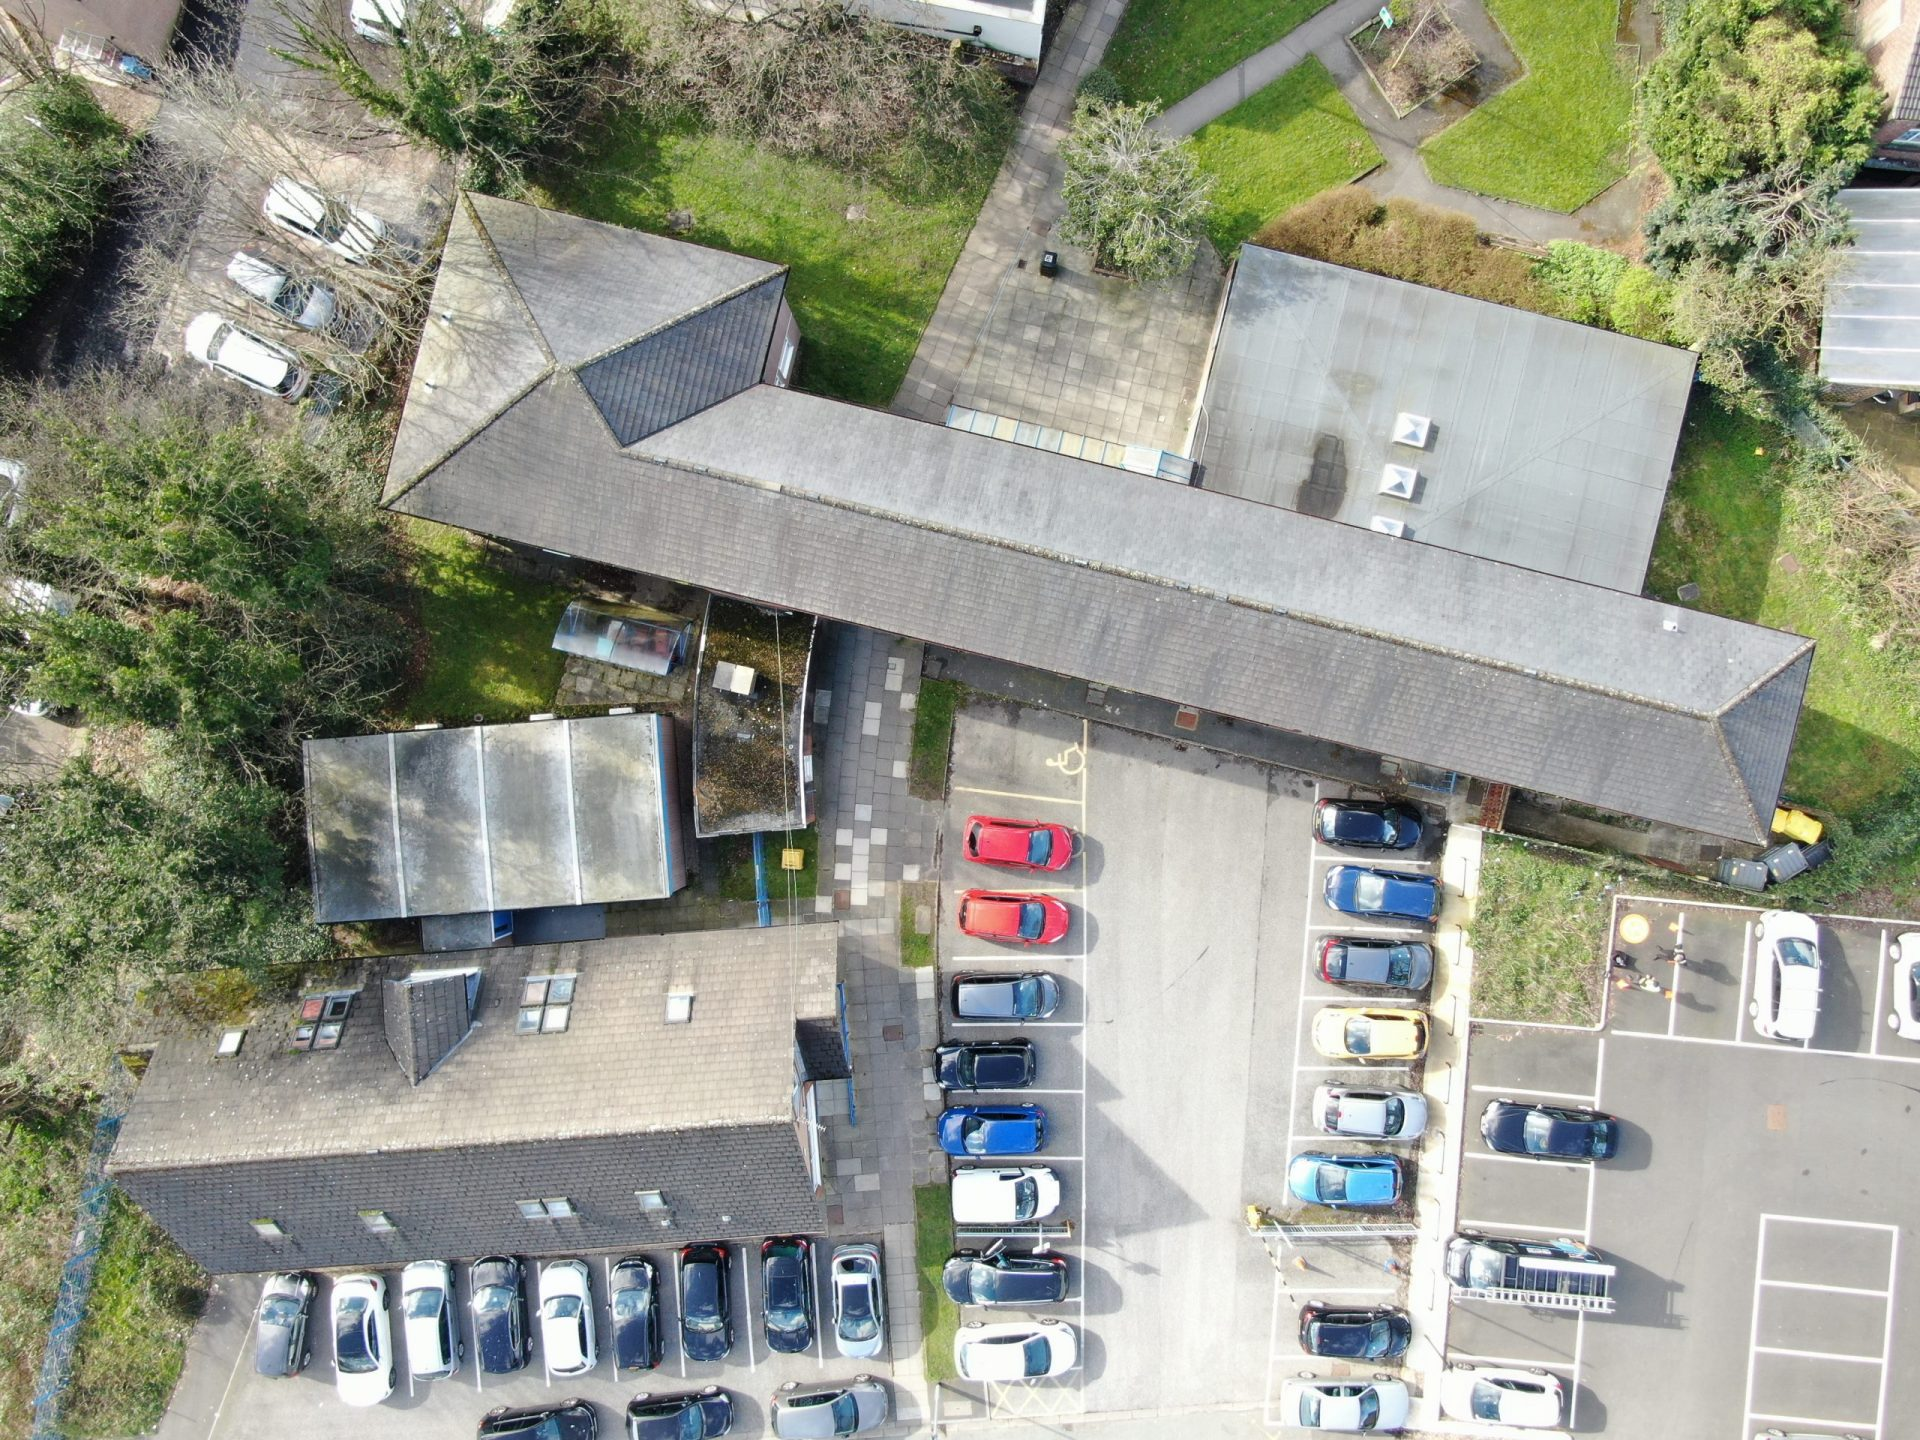 Roof Inspection by Drone Newcastle